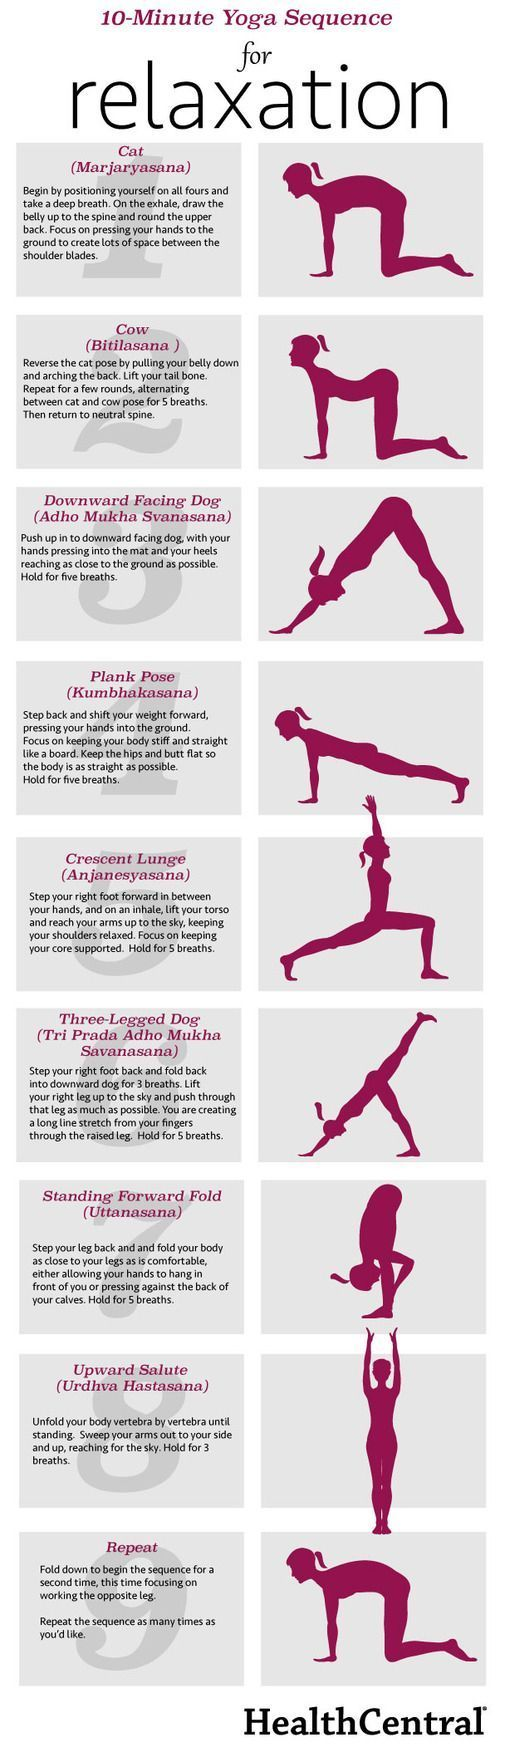 10-Minute Yoga Sequence for Relaxation (INFOGRAPHIC) - Exercise - Anxiety